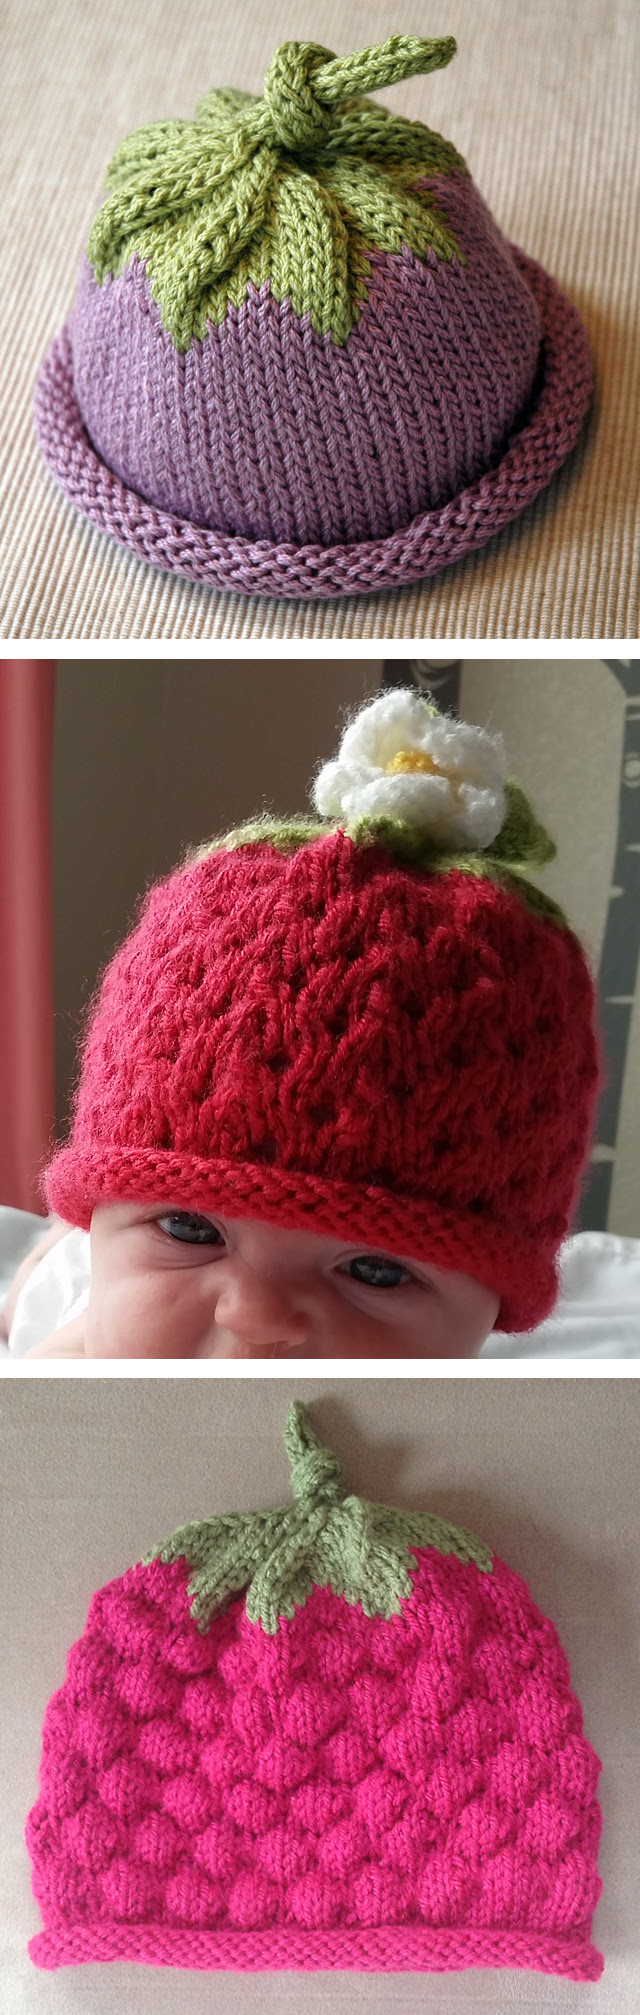 Free Knitting Pattern for Berry Baby Hat